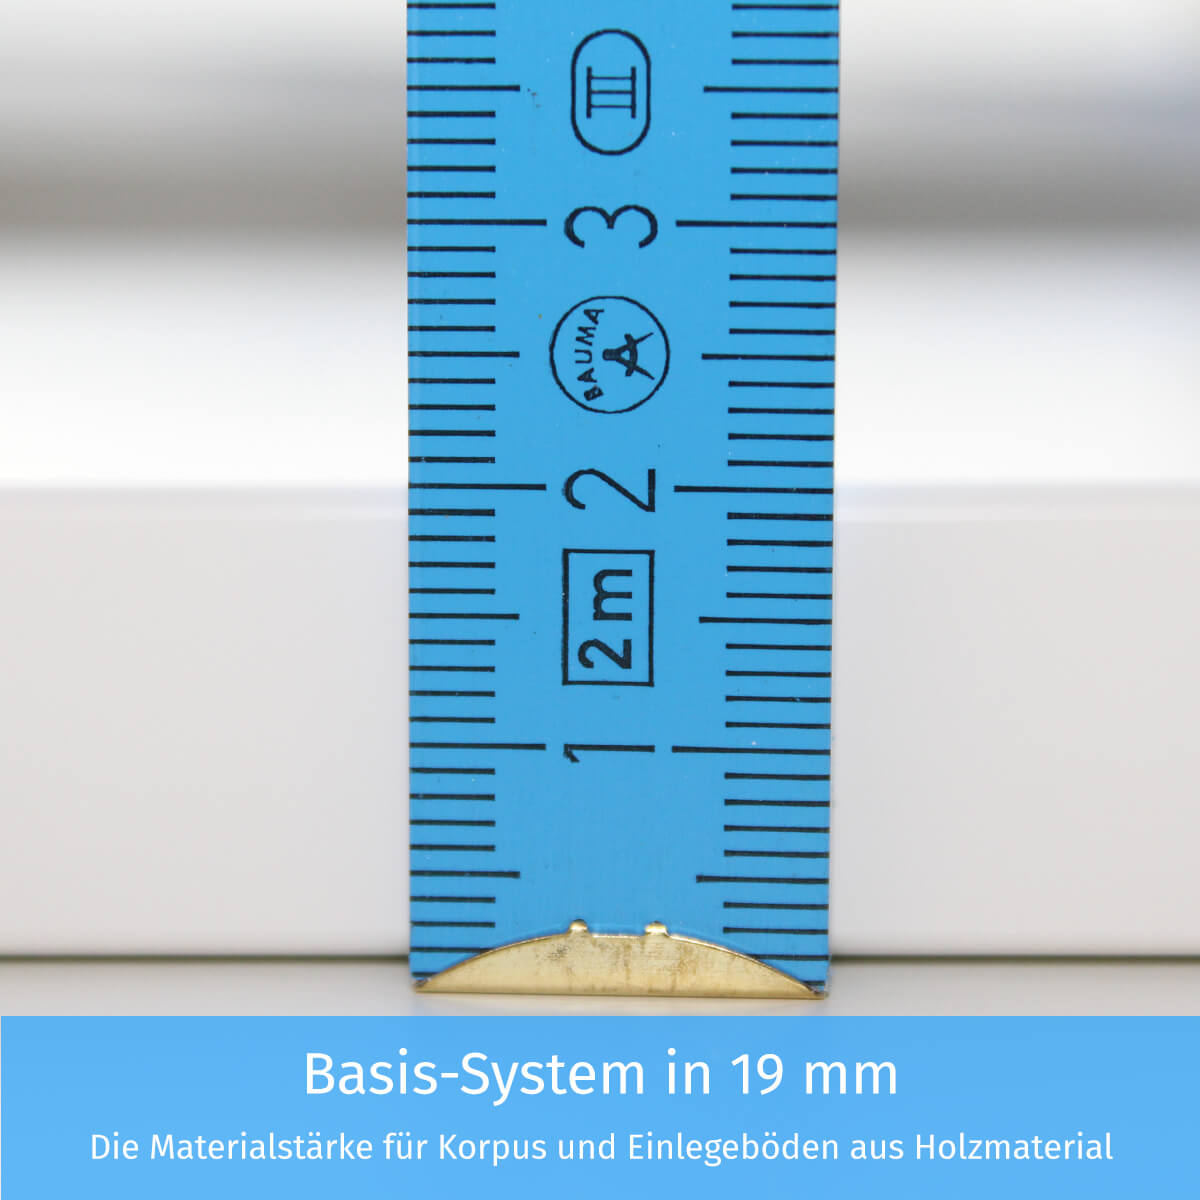 Basis-System in 19 mm